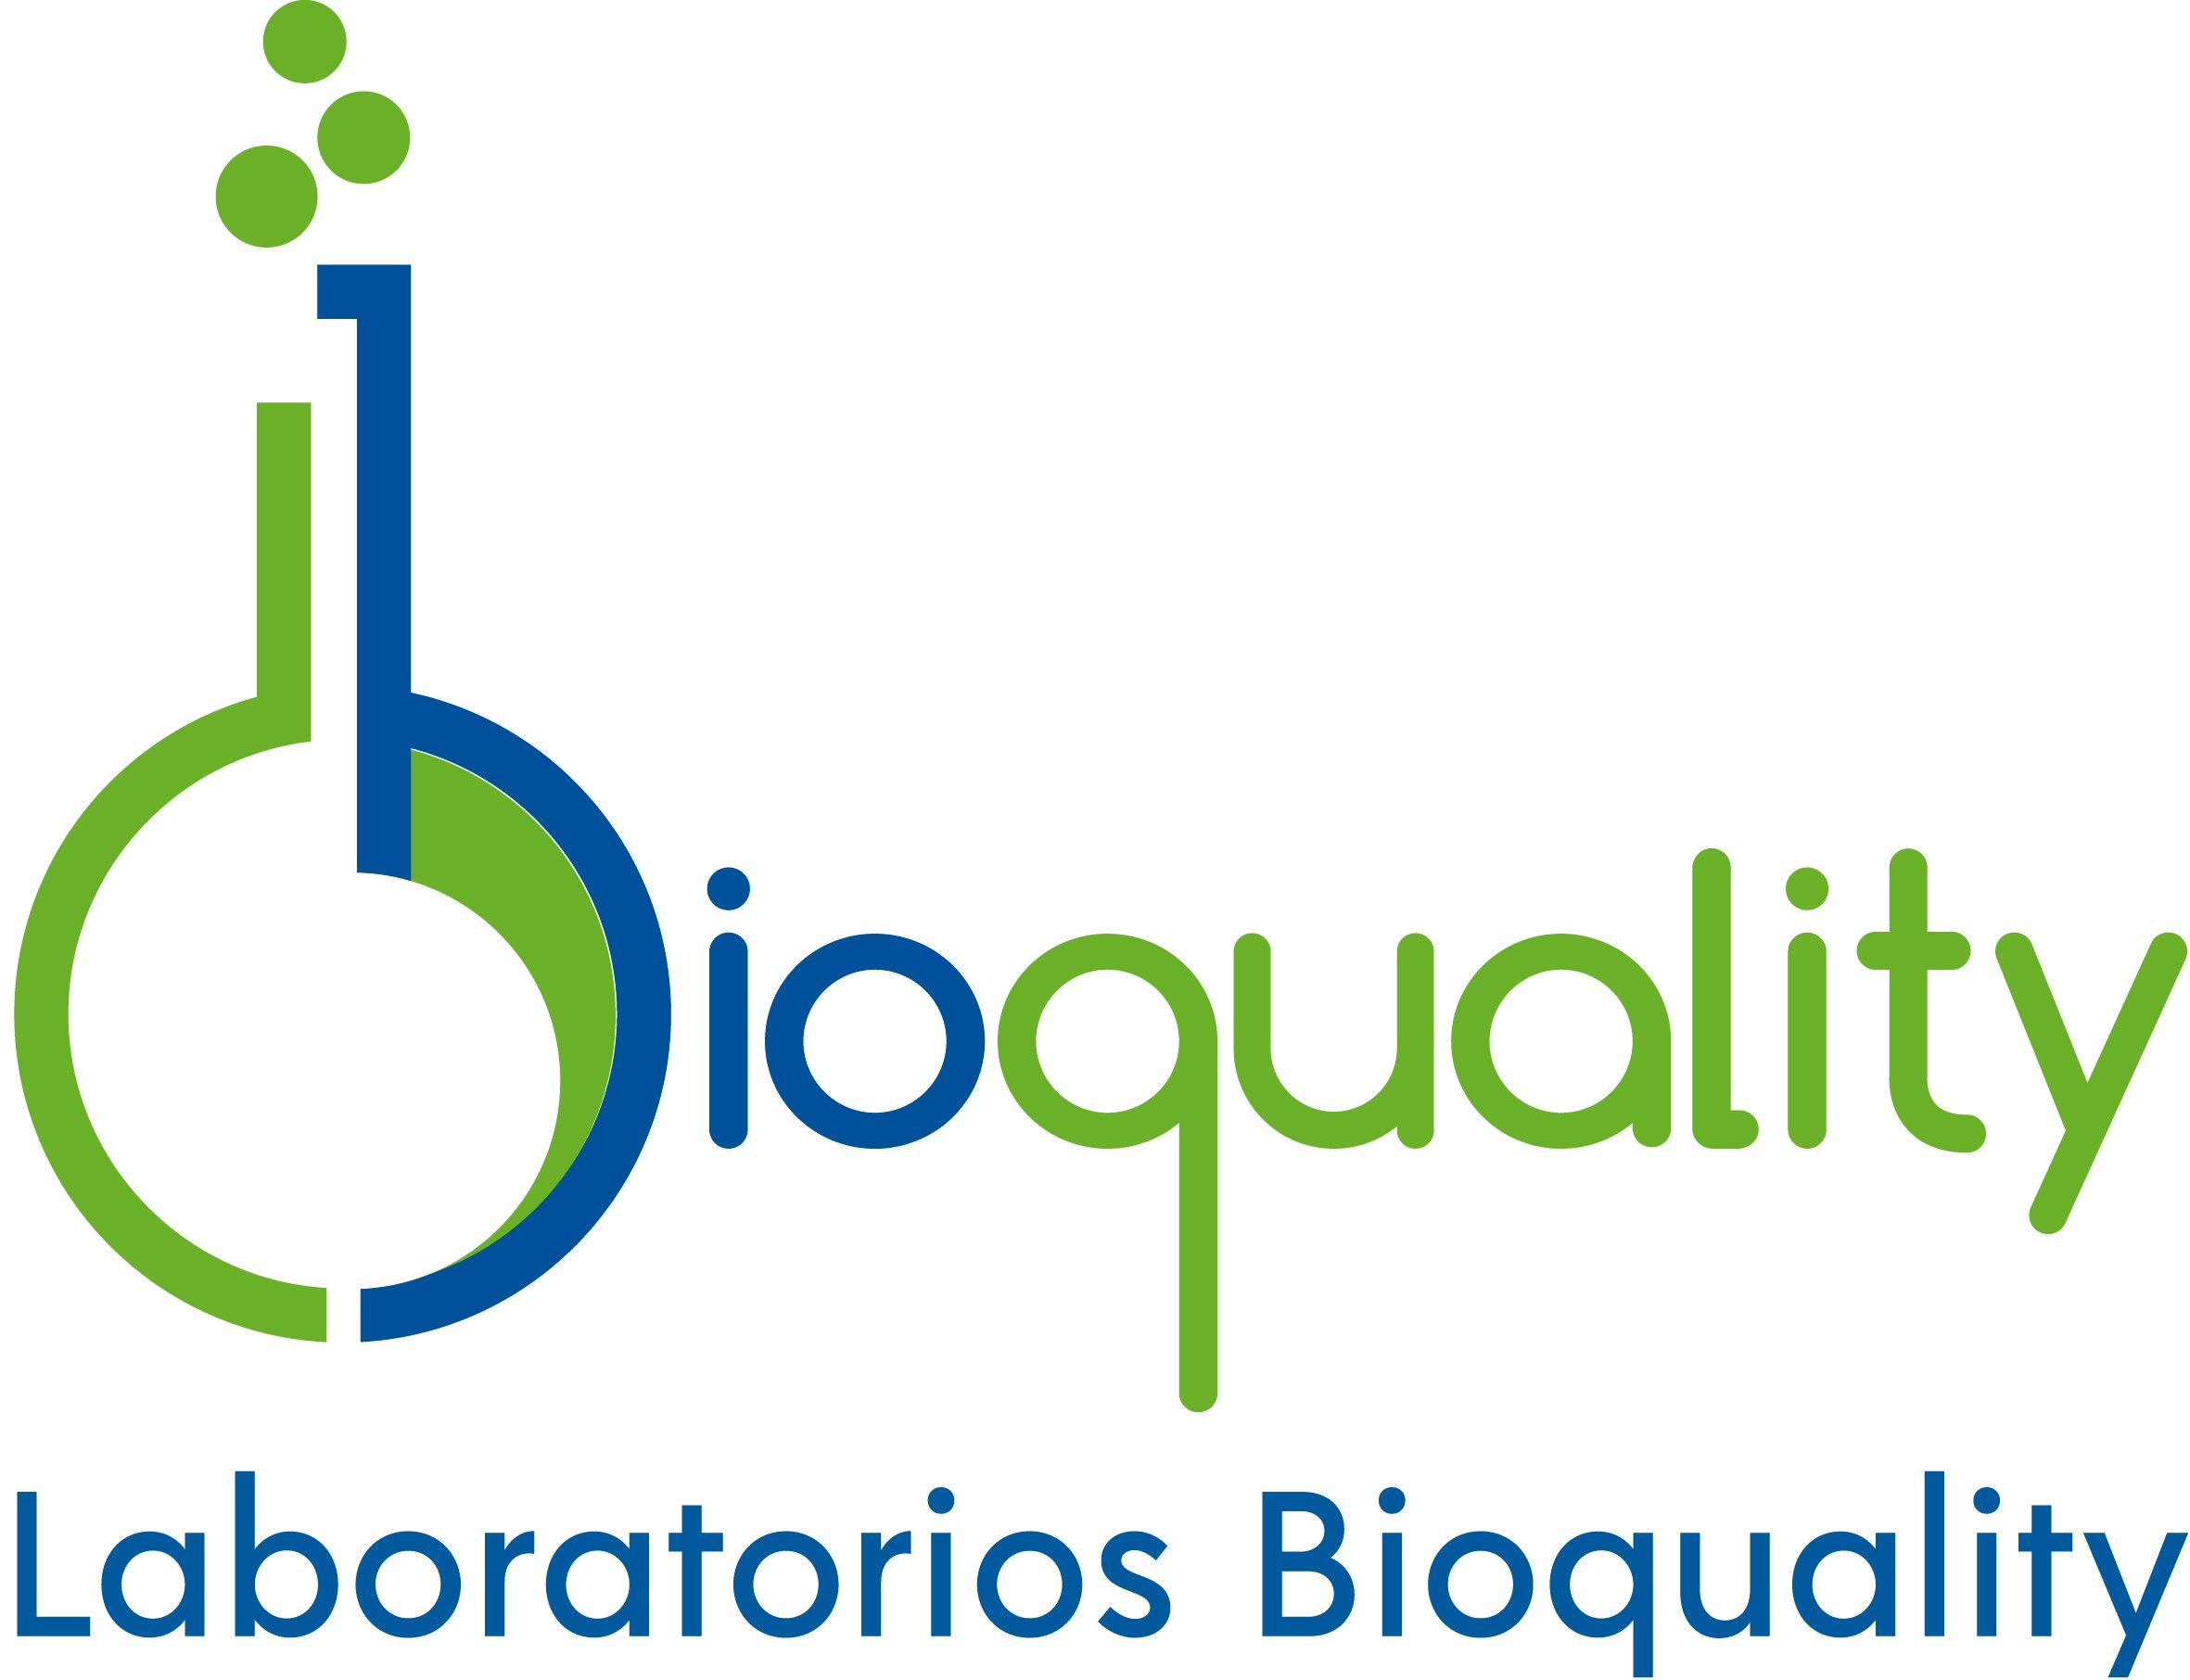 LABORATORIOS BIOQUALITY